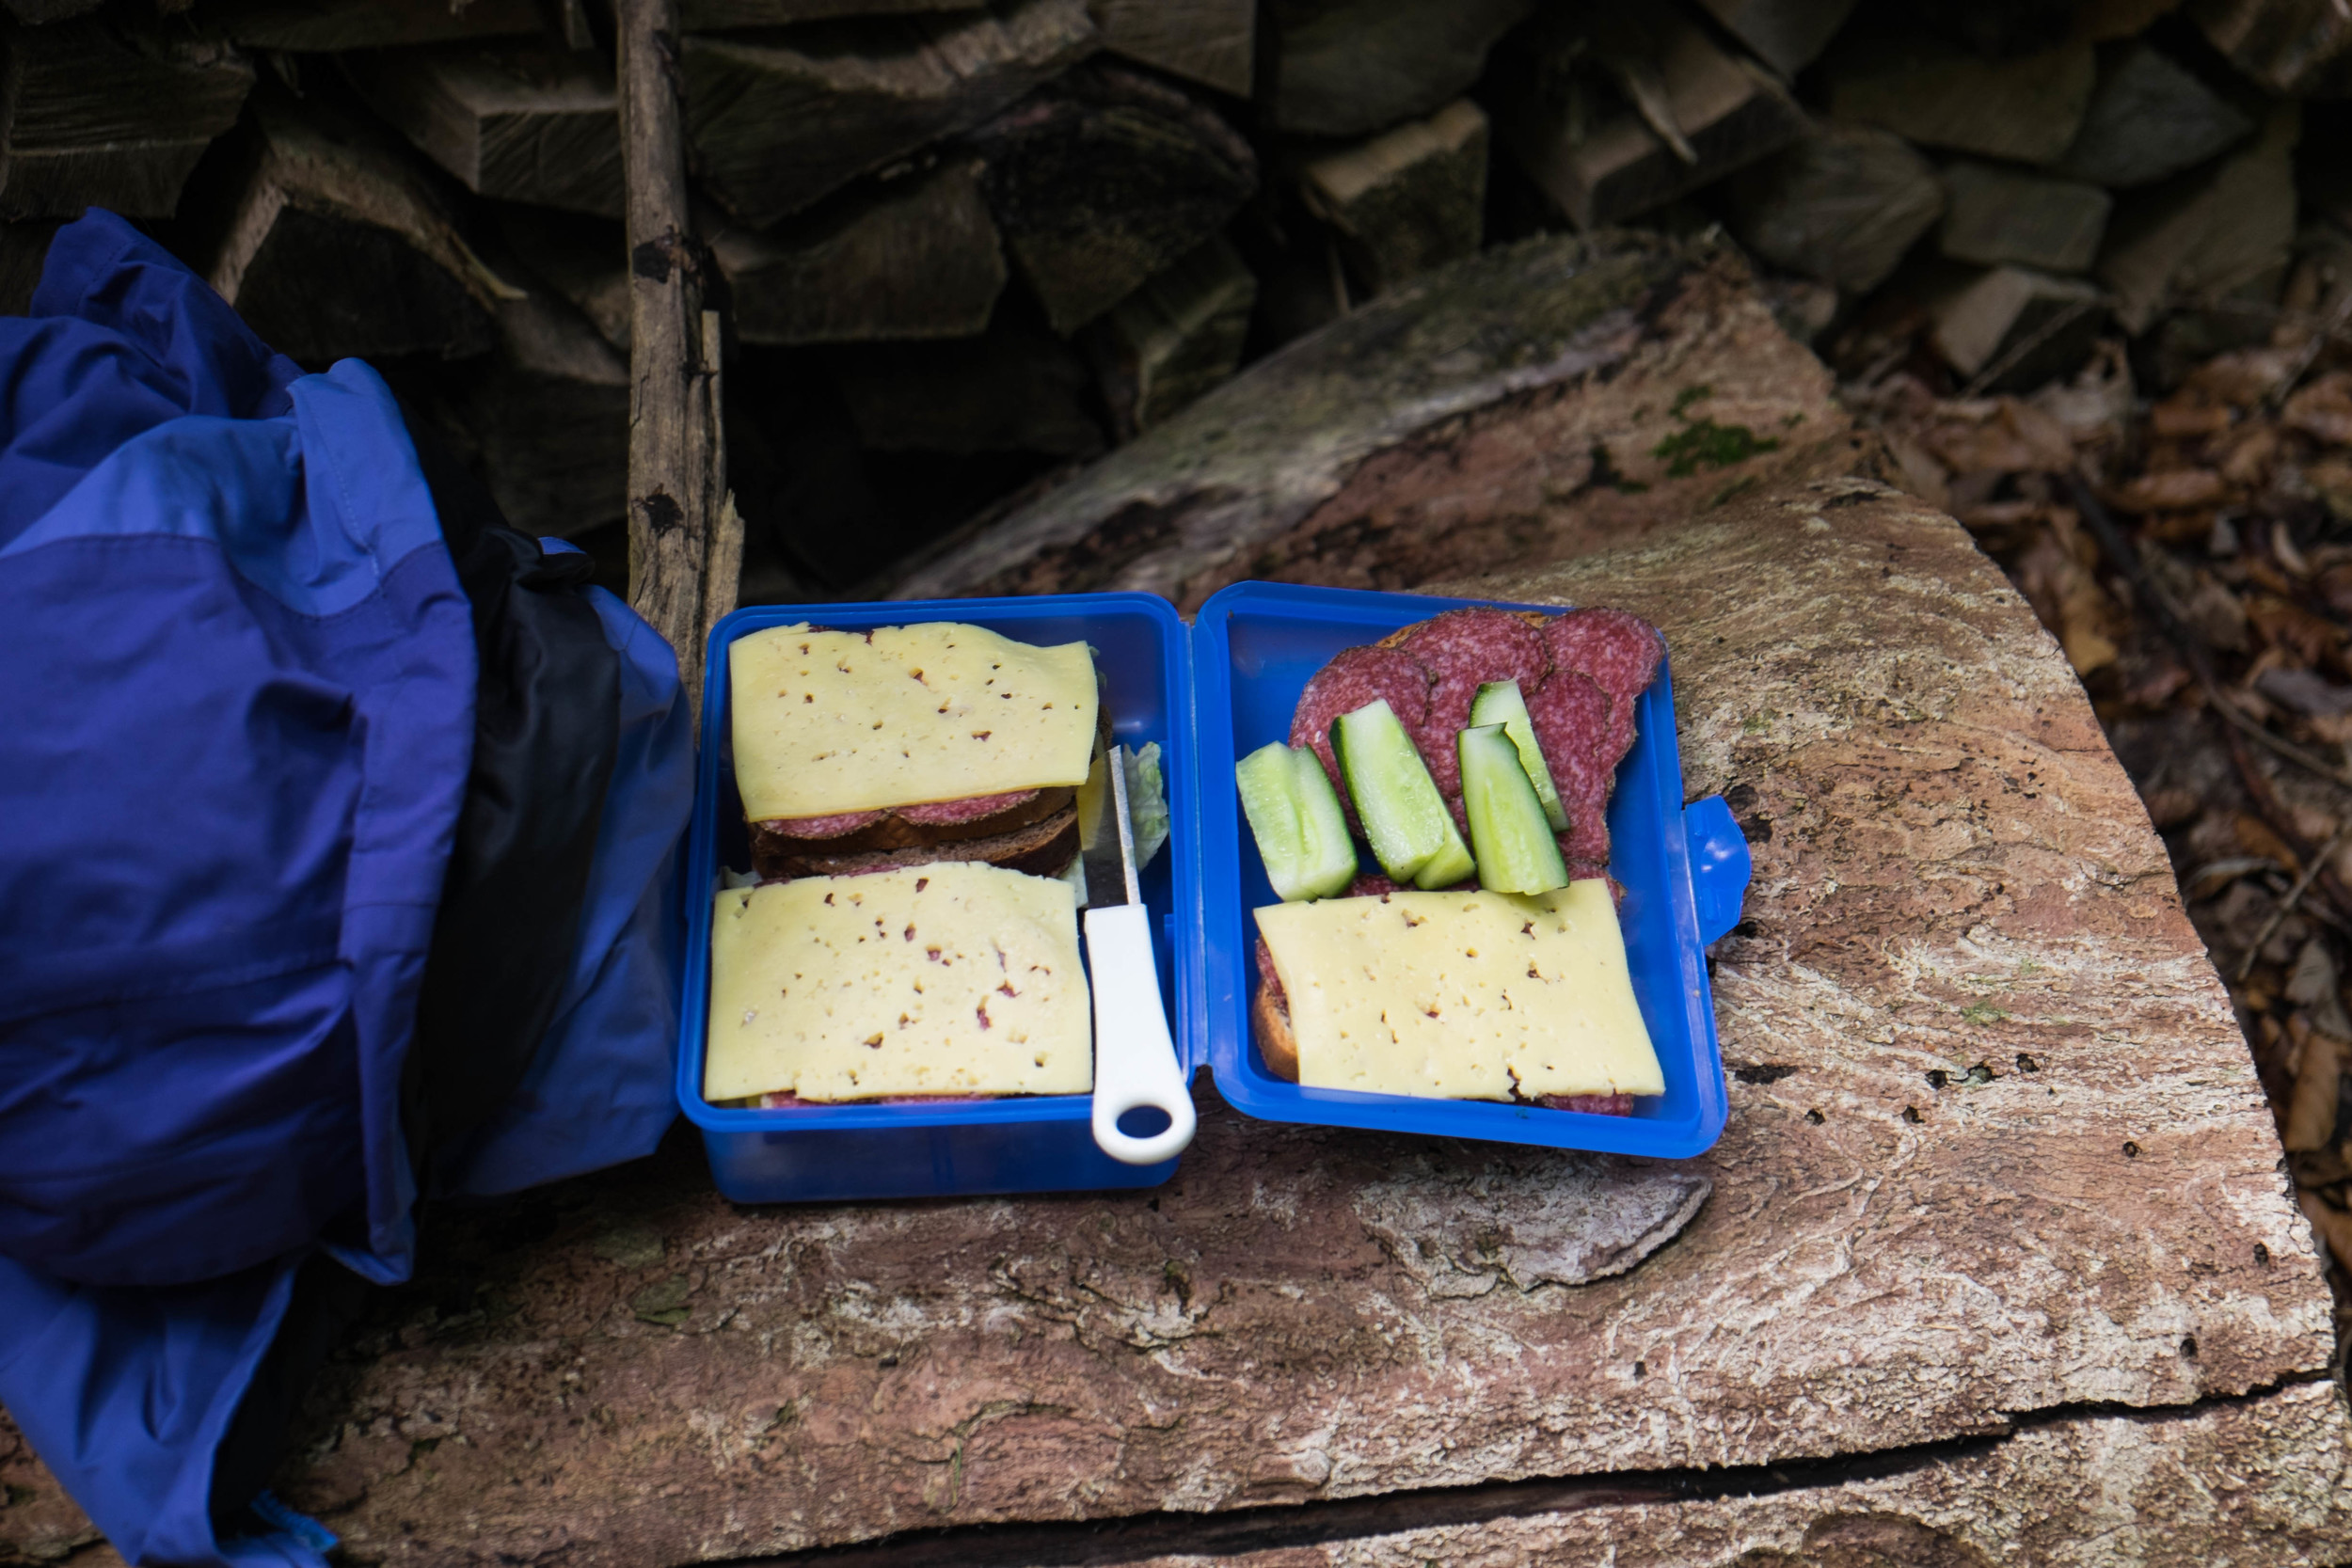 Our hiking snack that Kurt packed for us - rye bread + emmentaler cheese + salami + sliced cucumber - simple & satisfying.